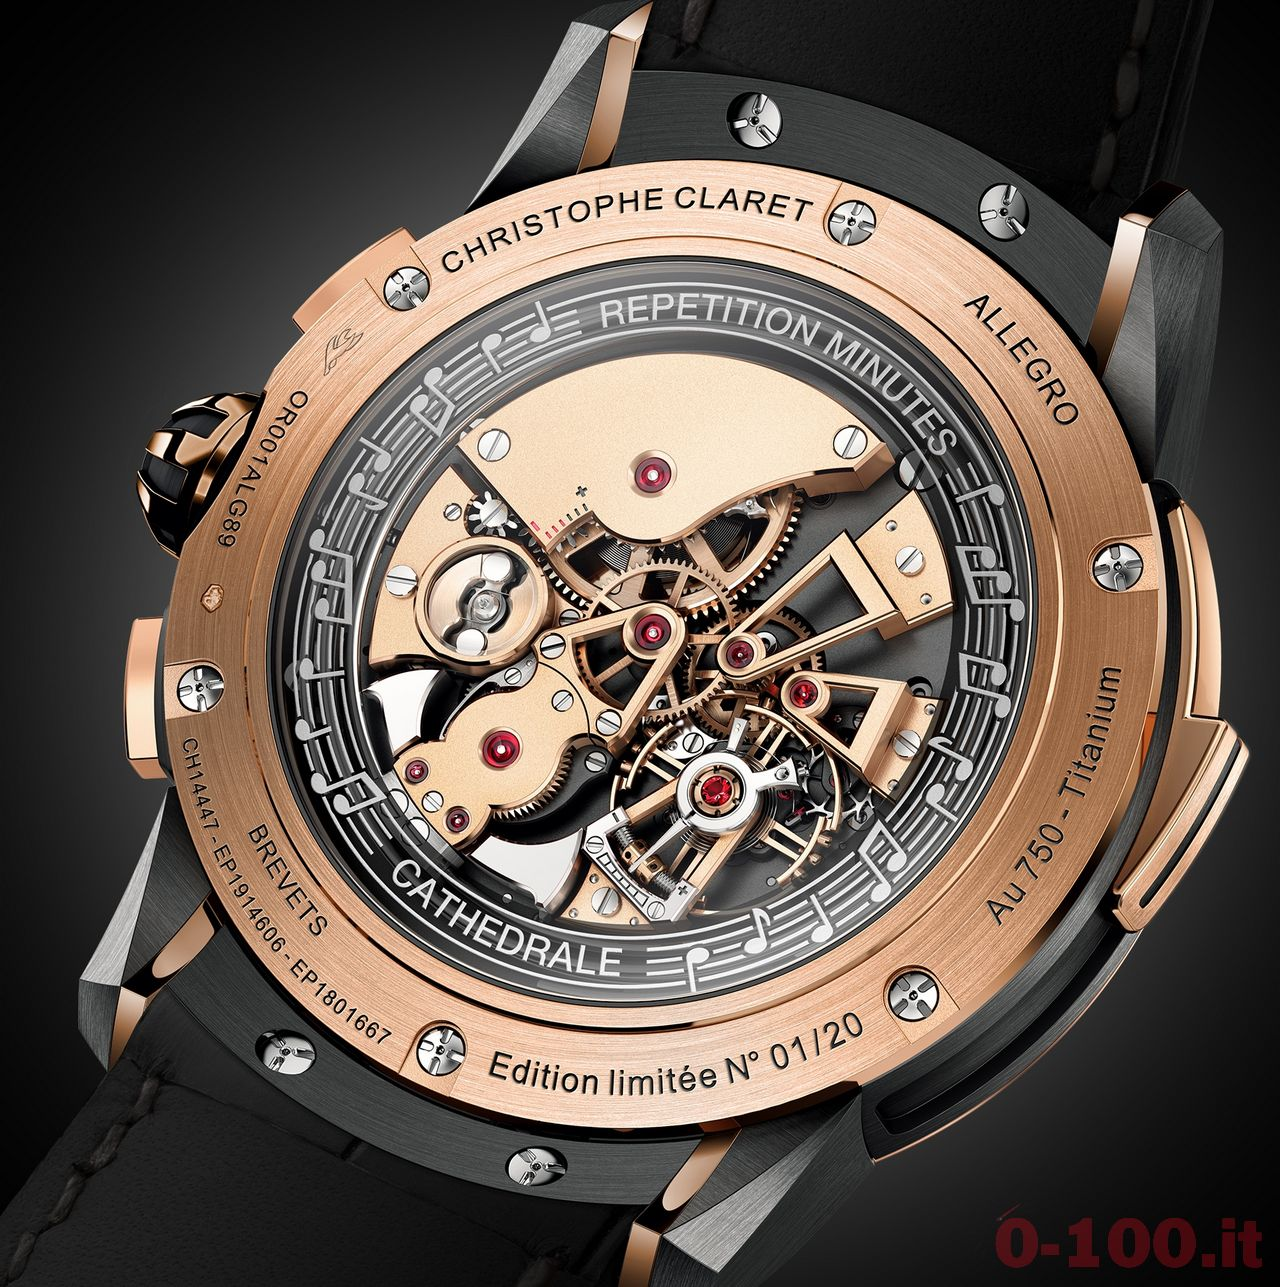 christophe-claret-allegro-limited-edition-prezzo-price_0-100_6